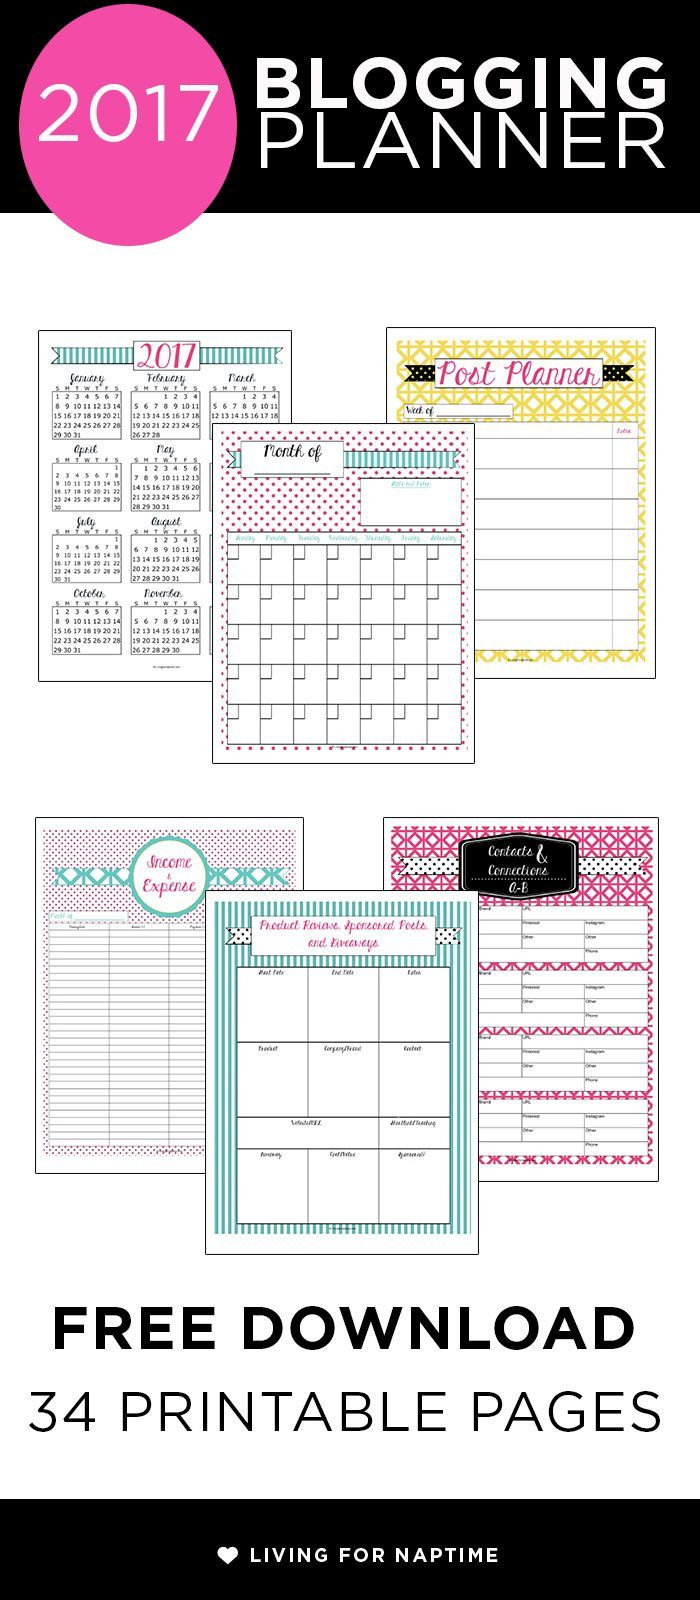 2017 Blogger Planner - Get Your Free Download Here! | Goals ...